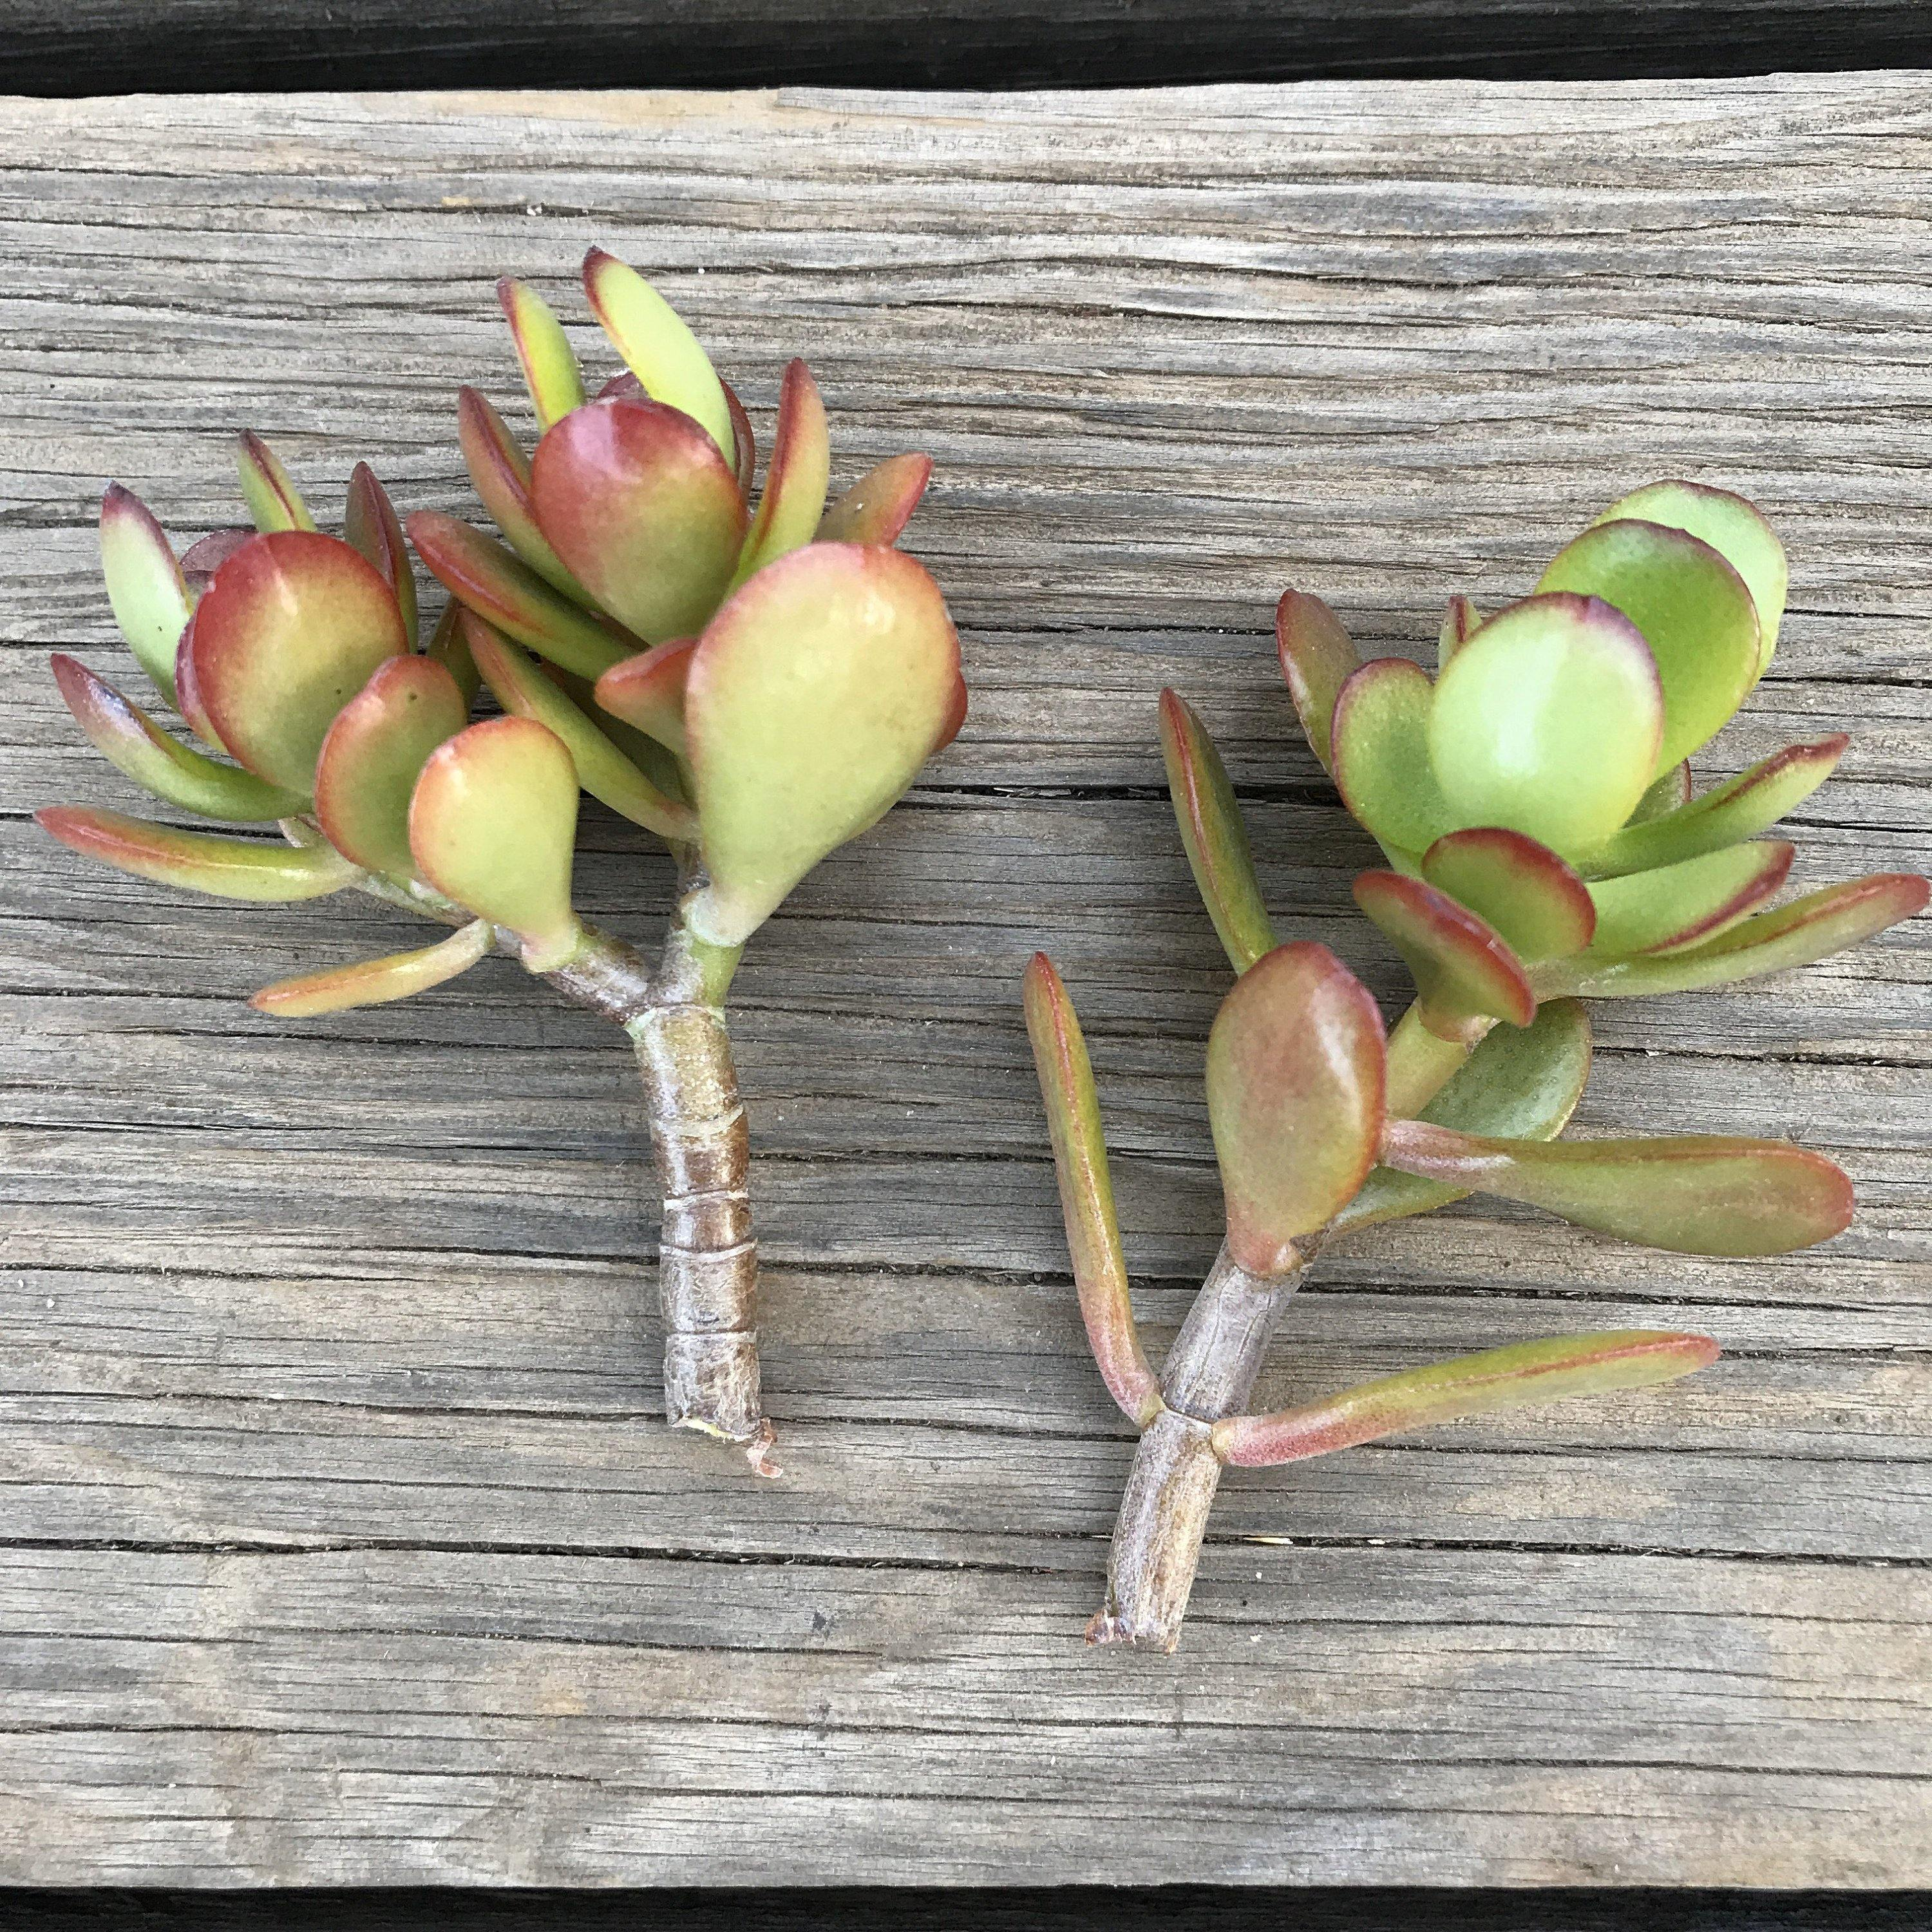 CUTTINGS - Crassula ovata 'Crosby's Dwarf' - 2-3 INCH